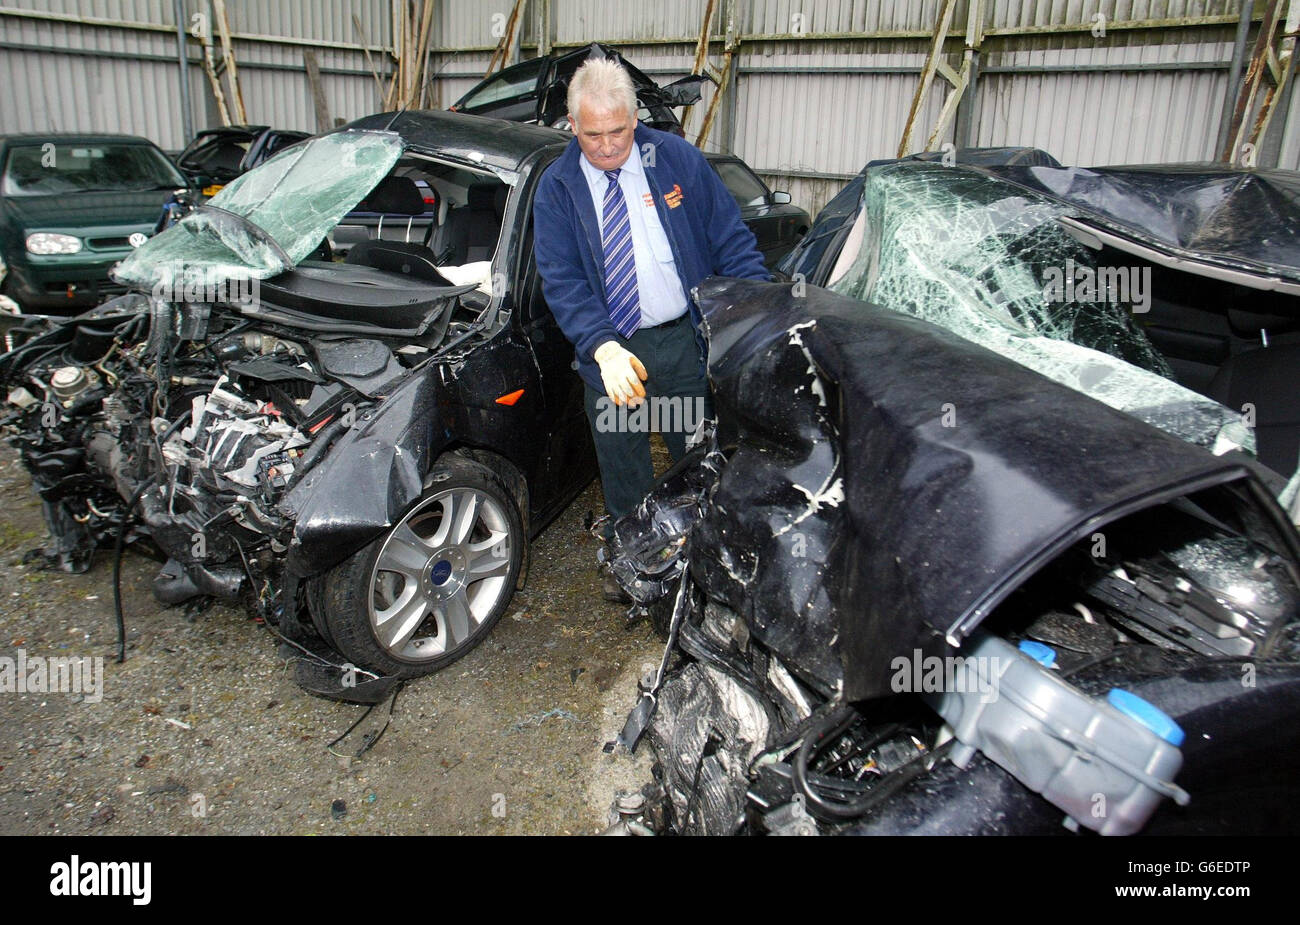 A member of staff looks at the remains of the Ford Mondeo and Audi cars, at a recovery yard in Newry, County Down, Stock Photo